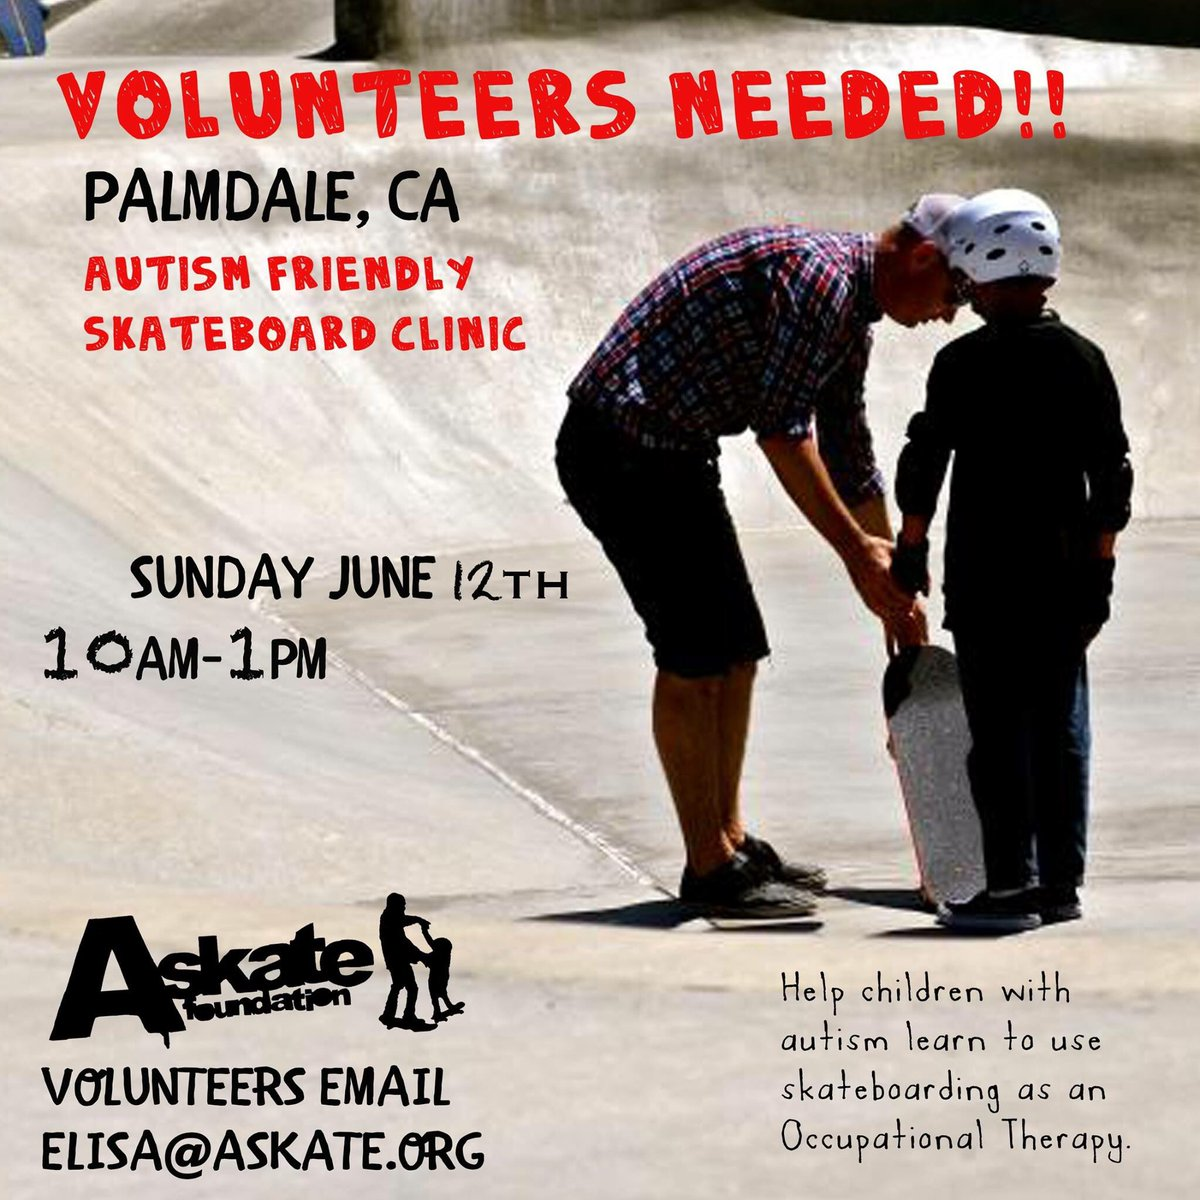 @SheckFoundation Please help! In need of 20 volunteers!Please repost help us Spread the word!#Autism #Skateboarding https://t.co/d3L18n9qZS